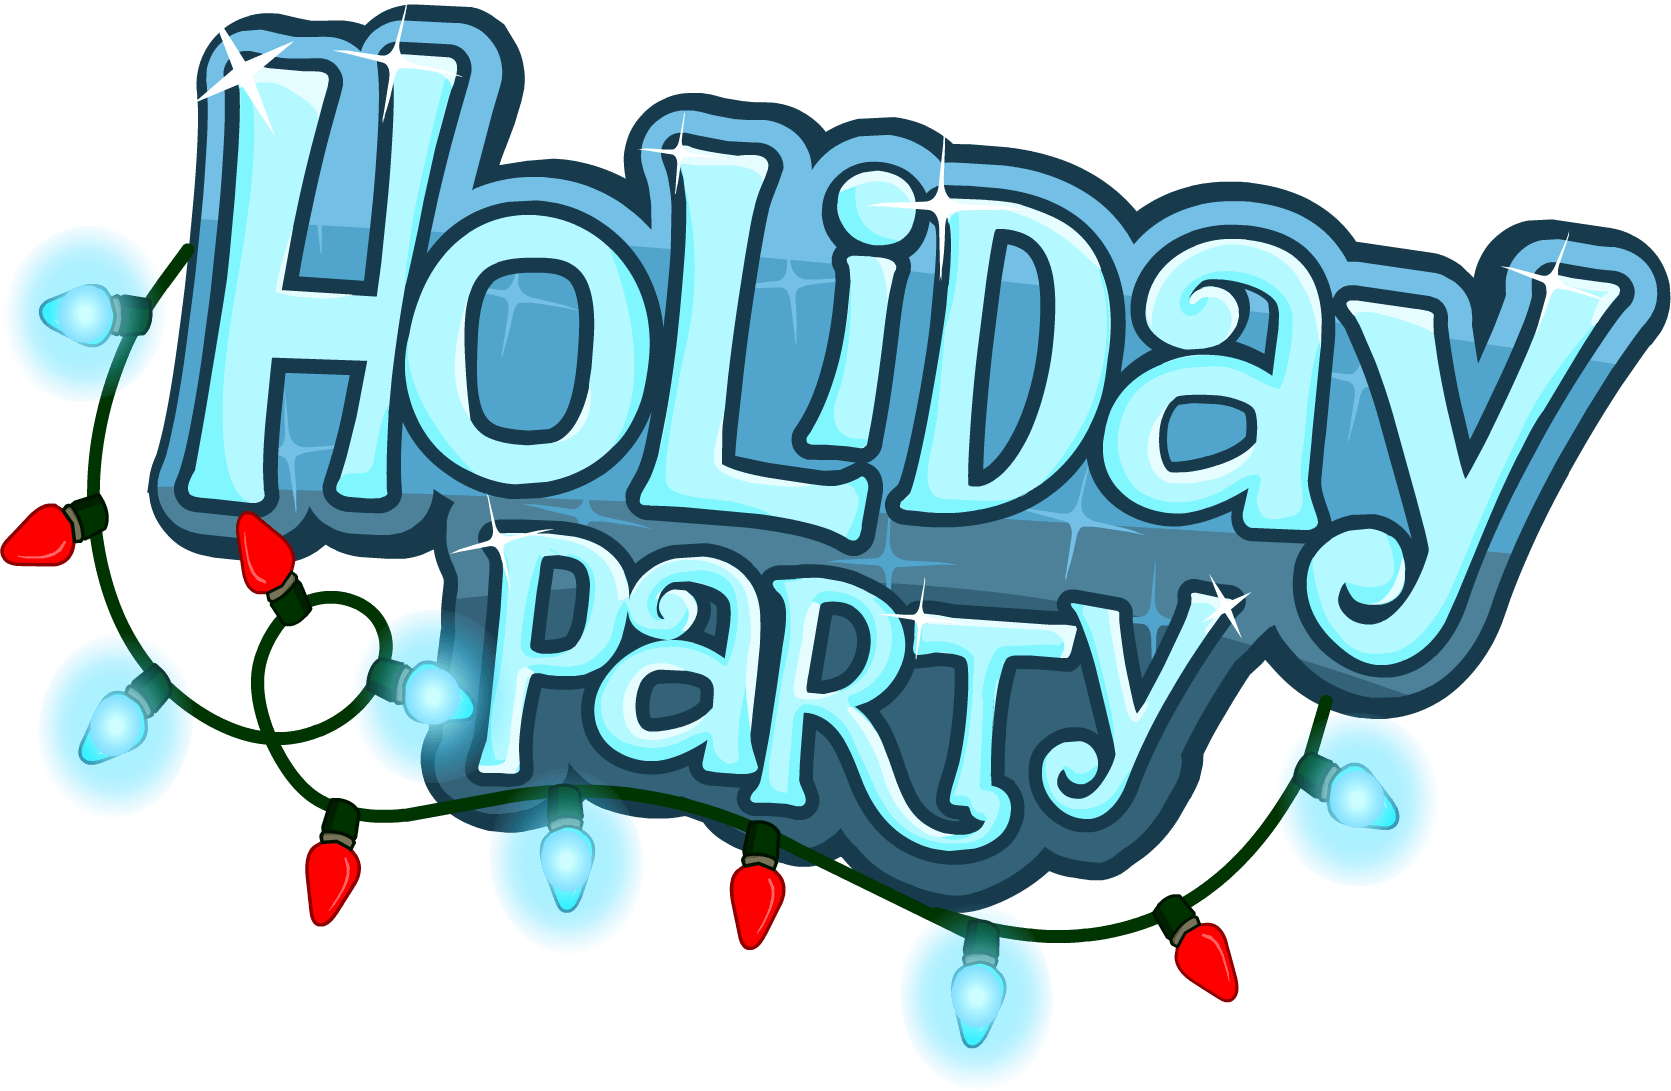 Download best on clipartmag. Free holiday potluck clipart